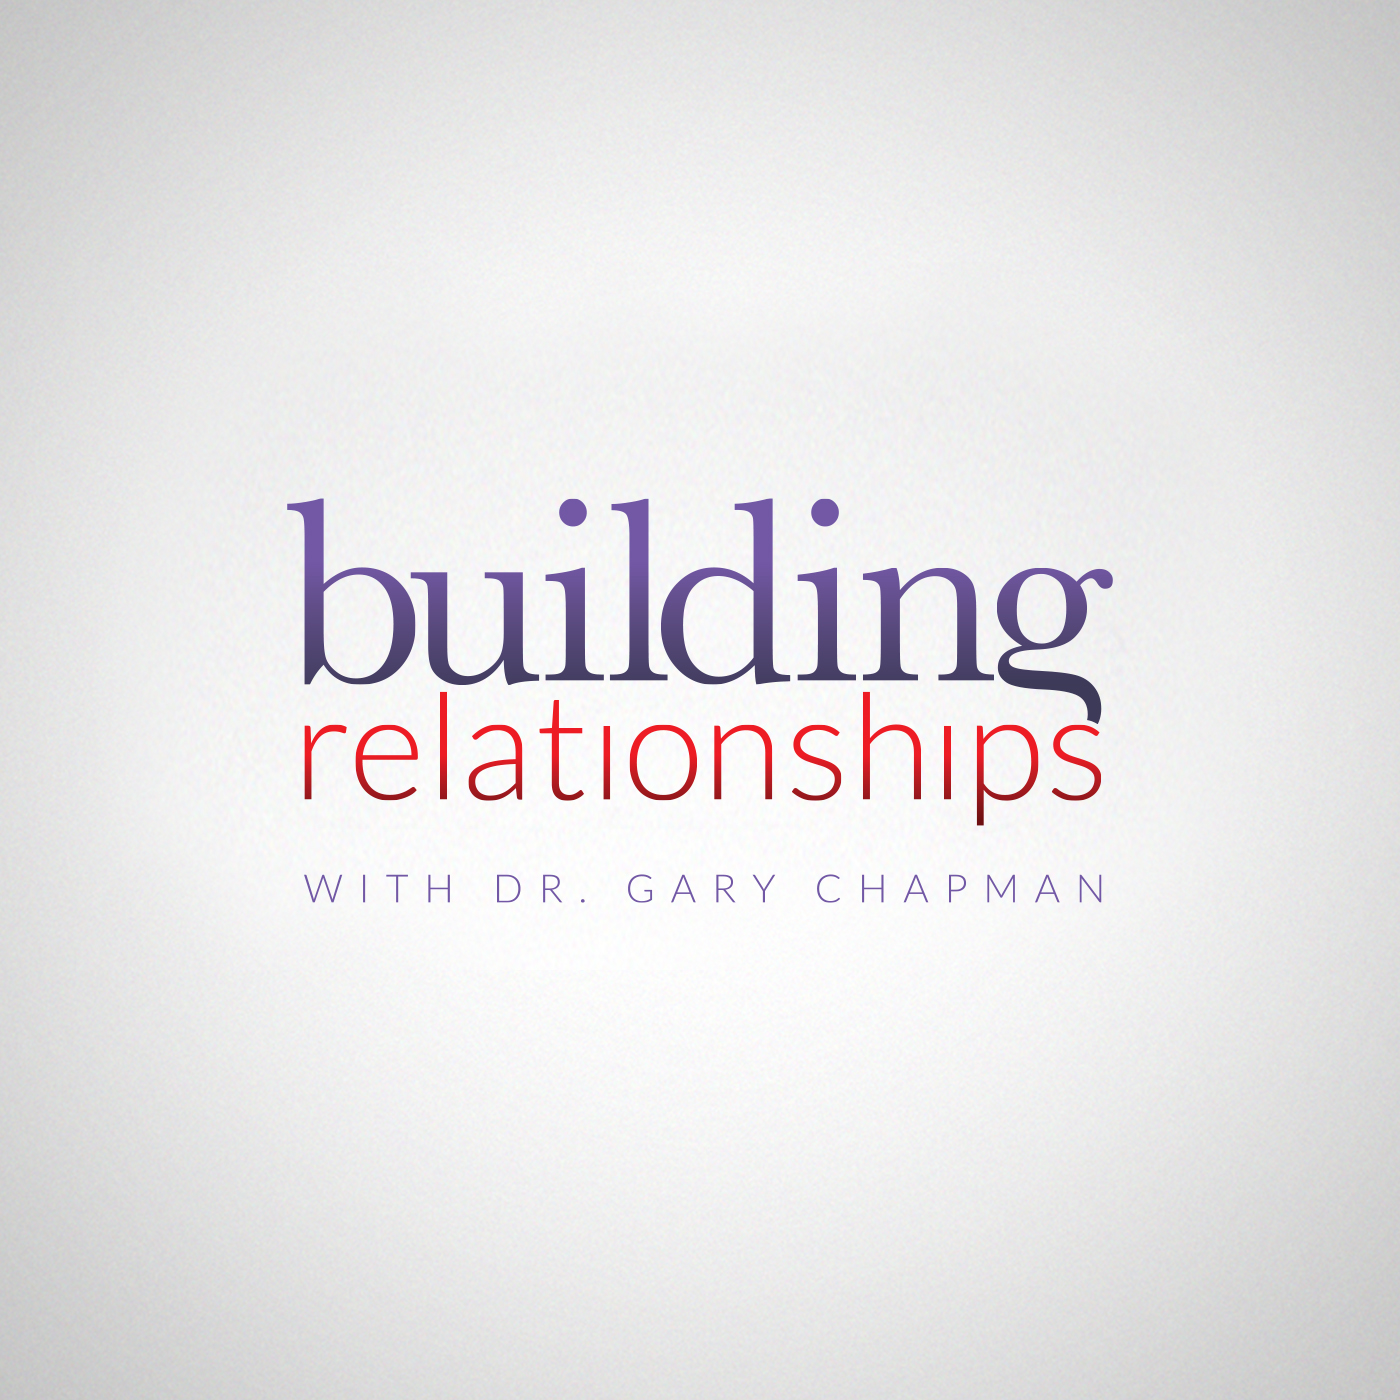 Building Relationships That Last: Your 10-Day Spiritual Action Plan